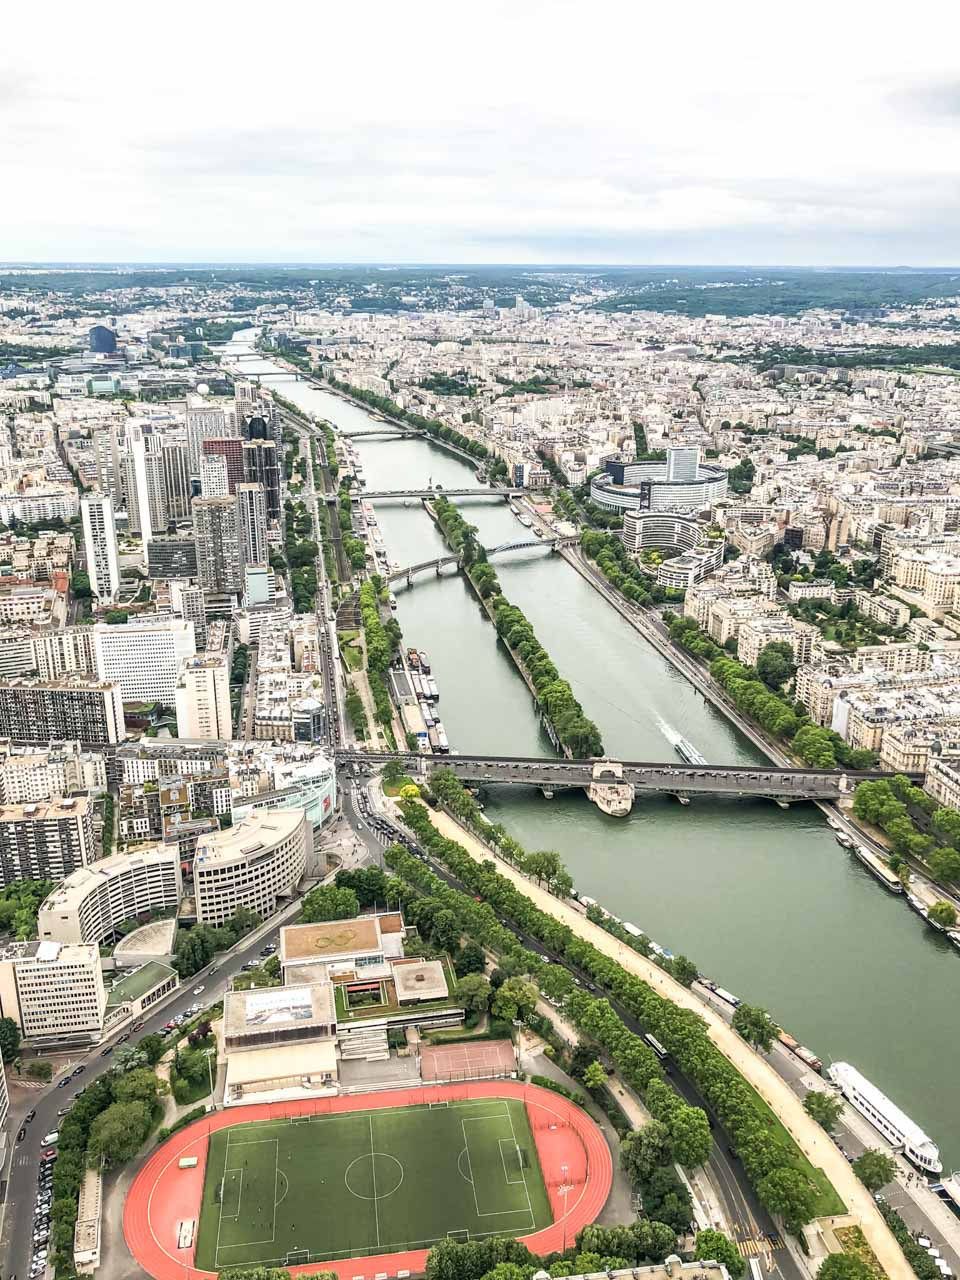 An aerial view of various bridges on the Seine River seen from the top of the Eiffel Tower in Paris, France